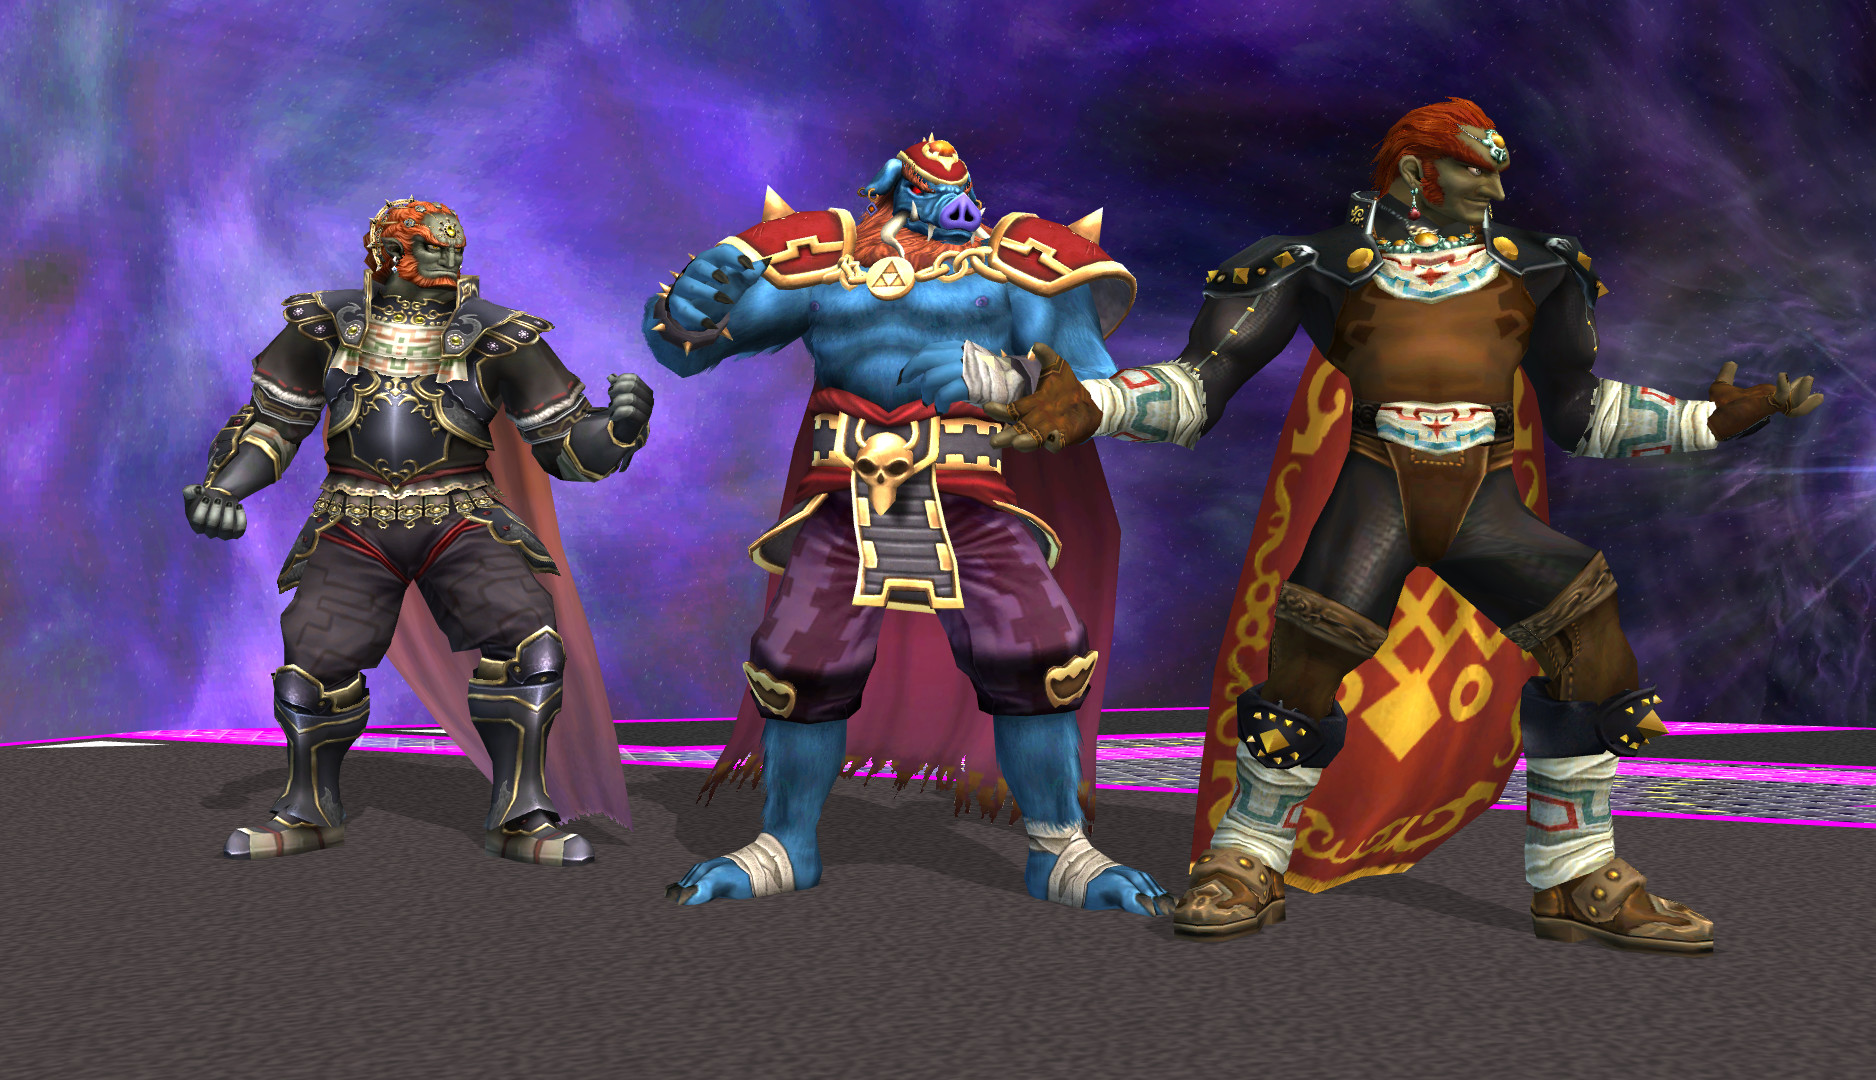 Pig Ganon standing with the two other Ganon's